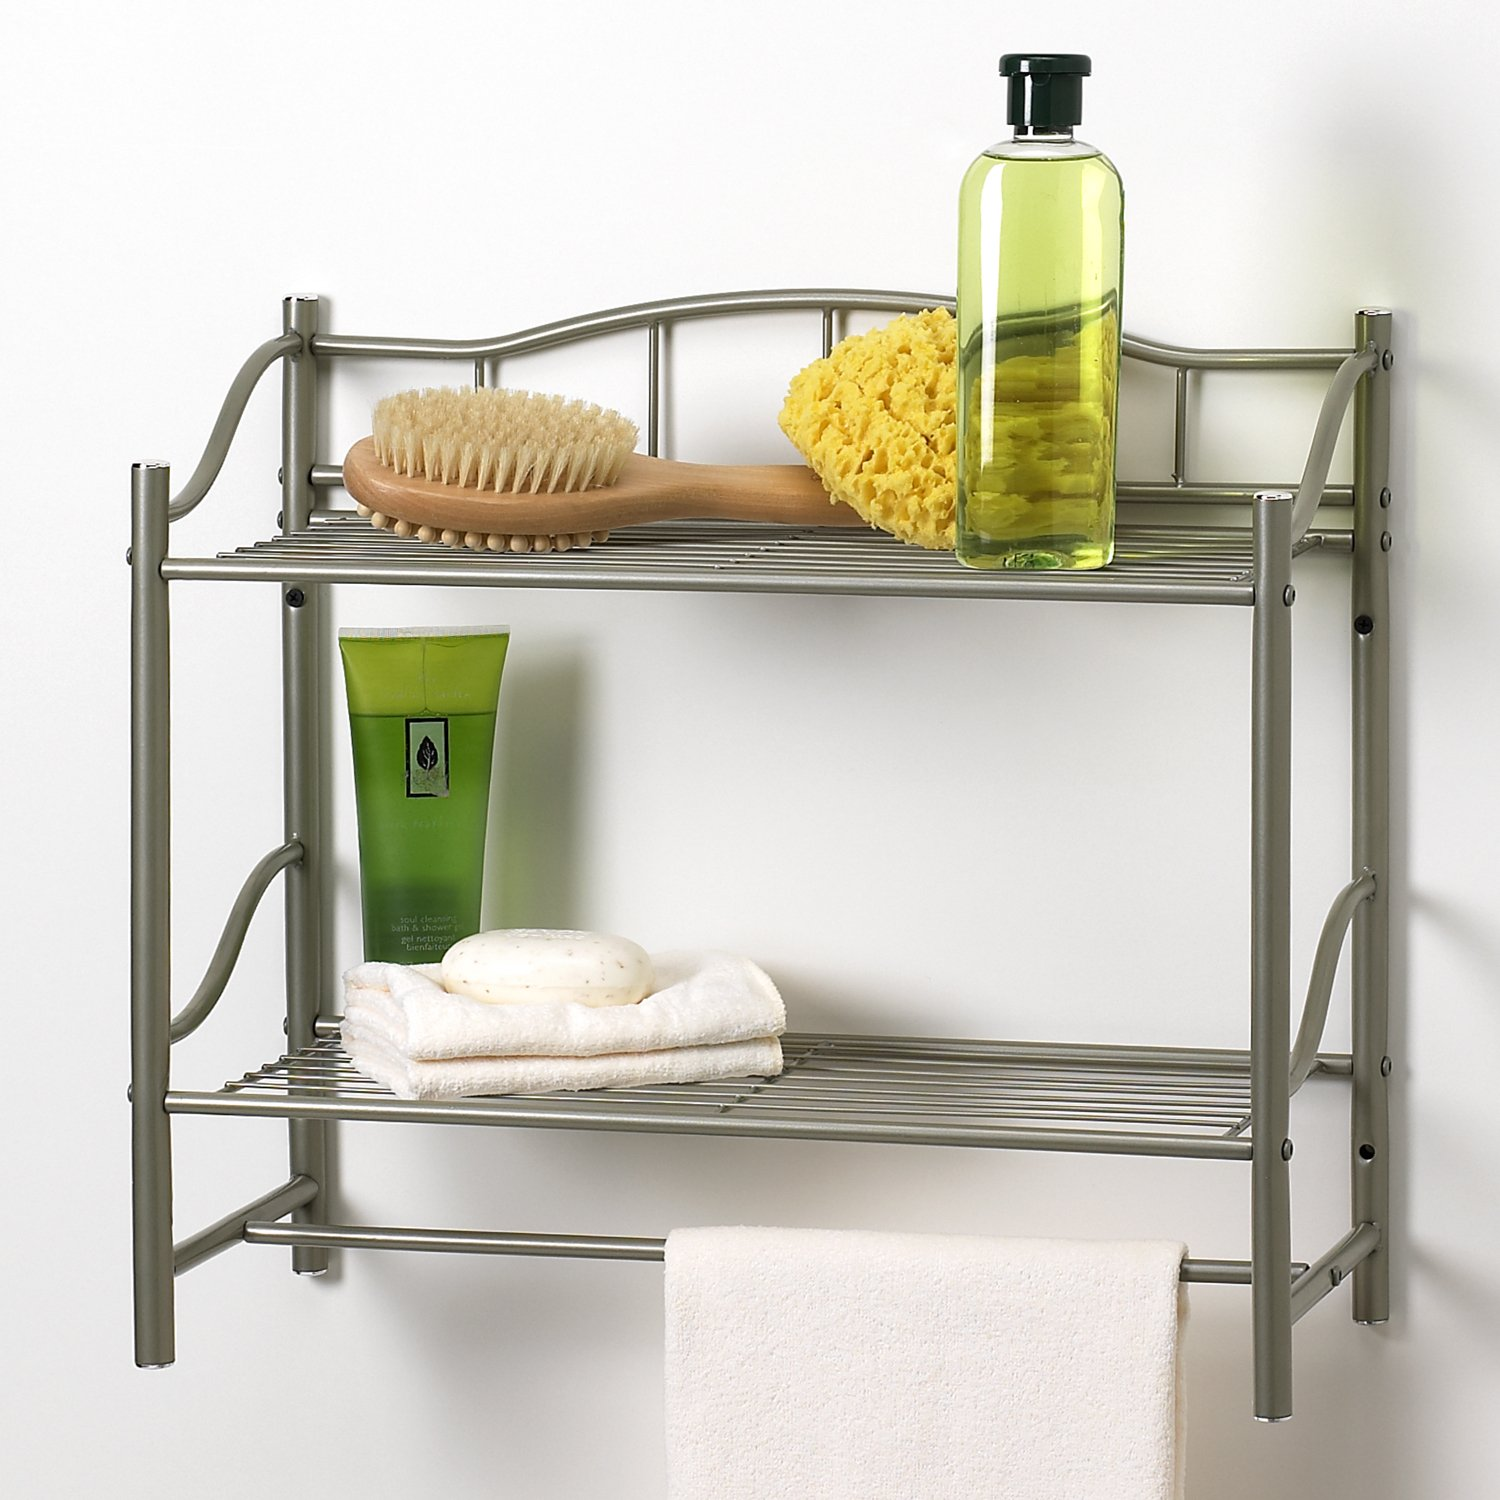 Creative Bath Products Complete Collection 2 Shelf Wall Organizer with Towel Bar, Pearl Nickel finish by Creative Bath